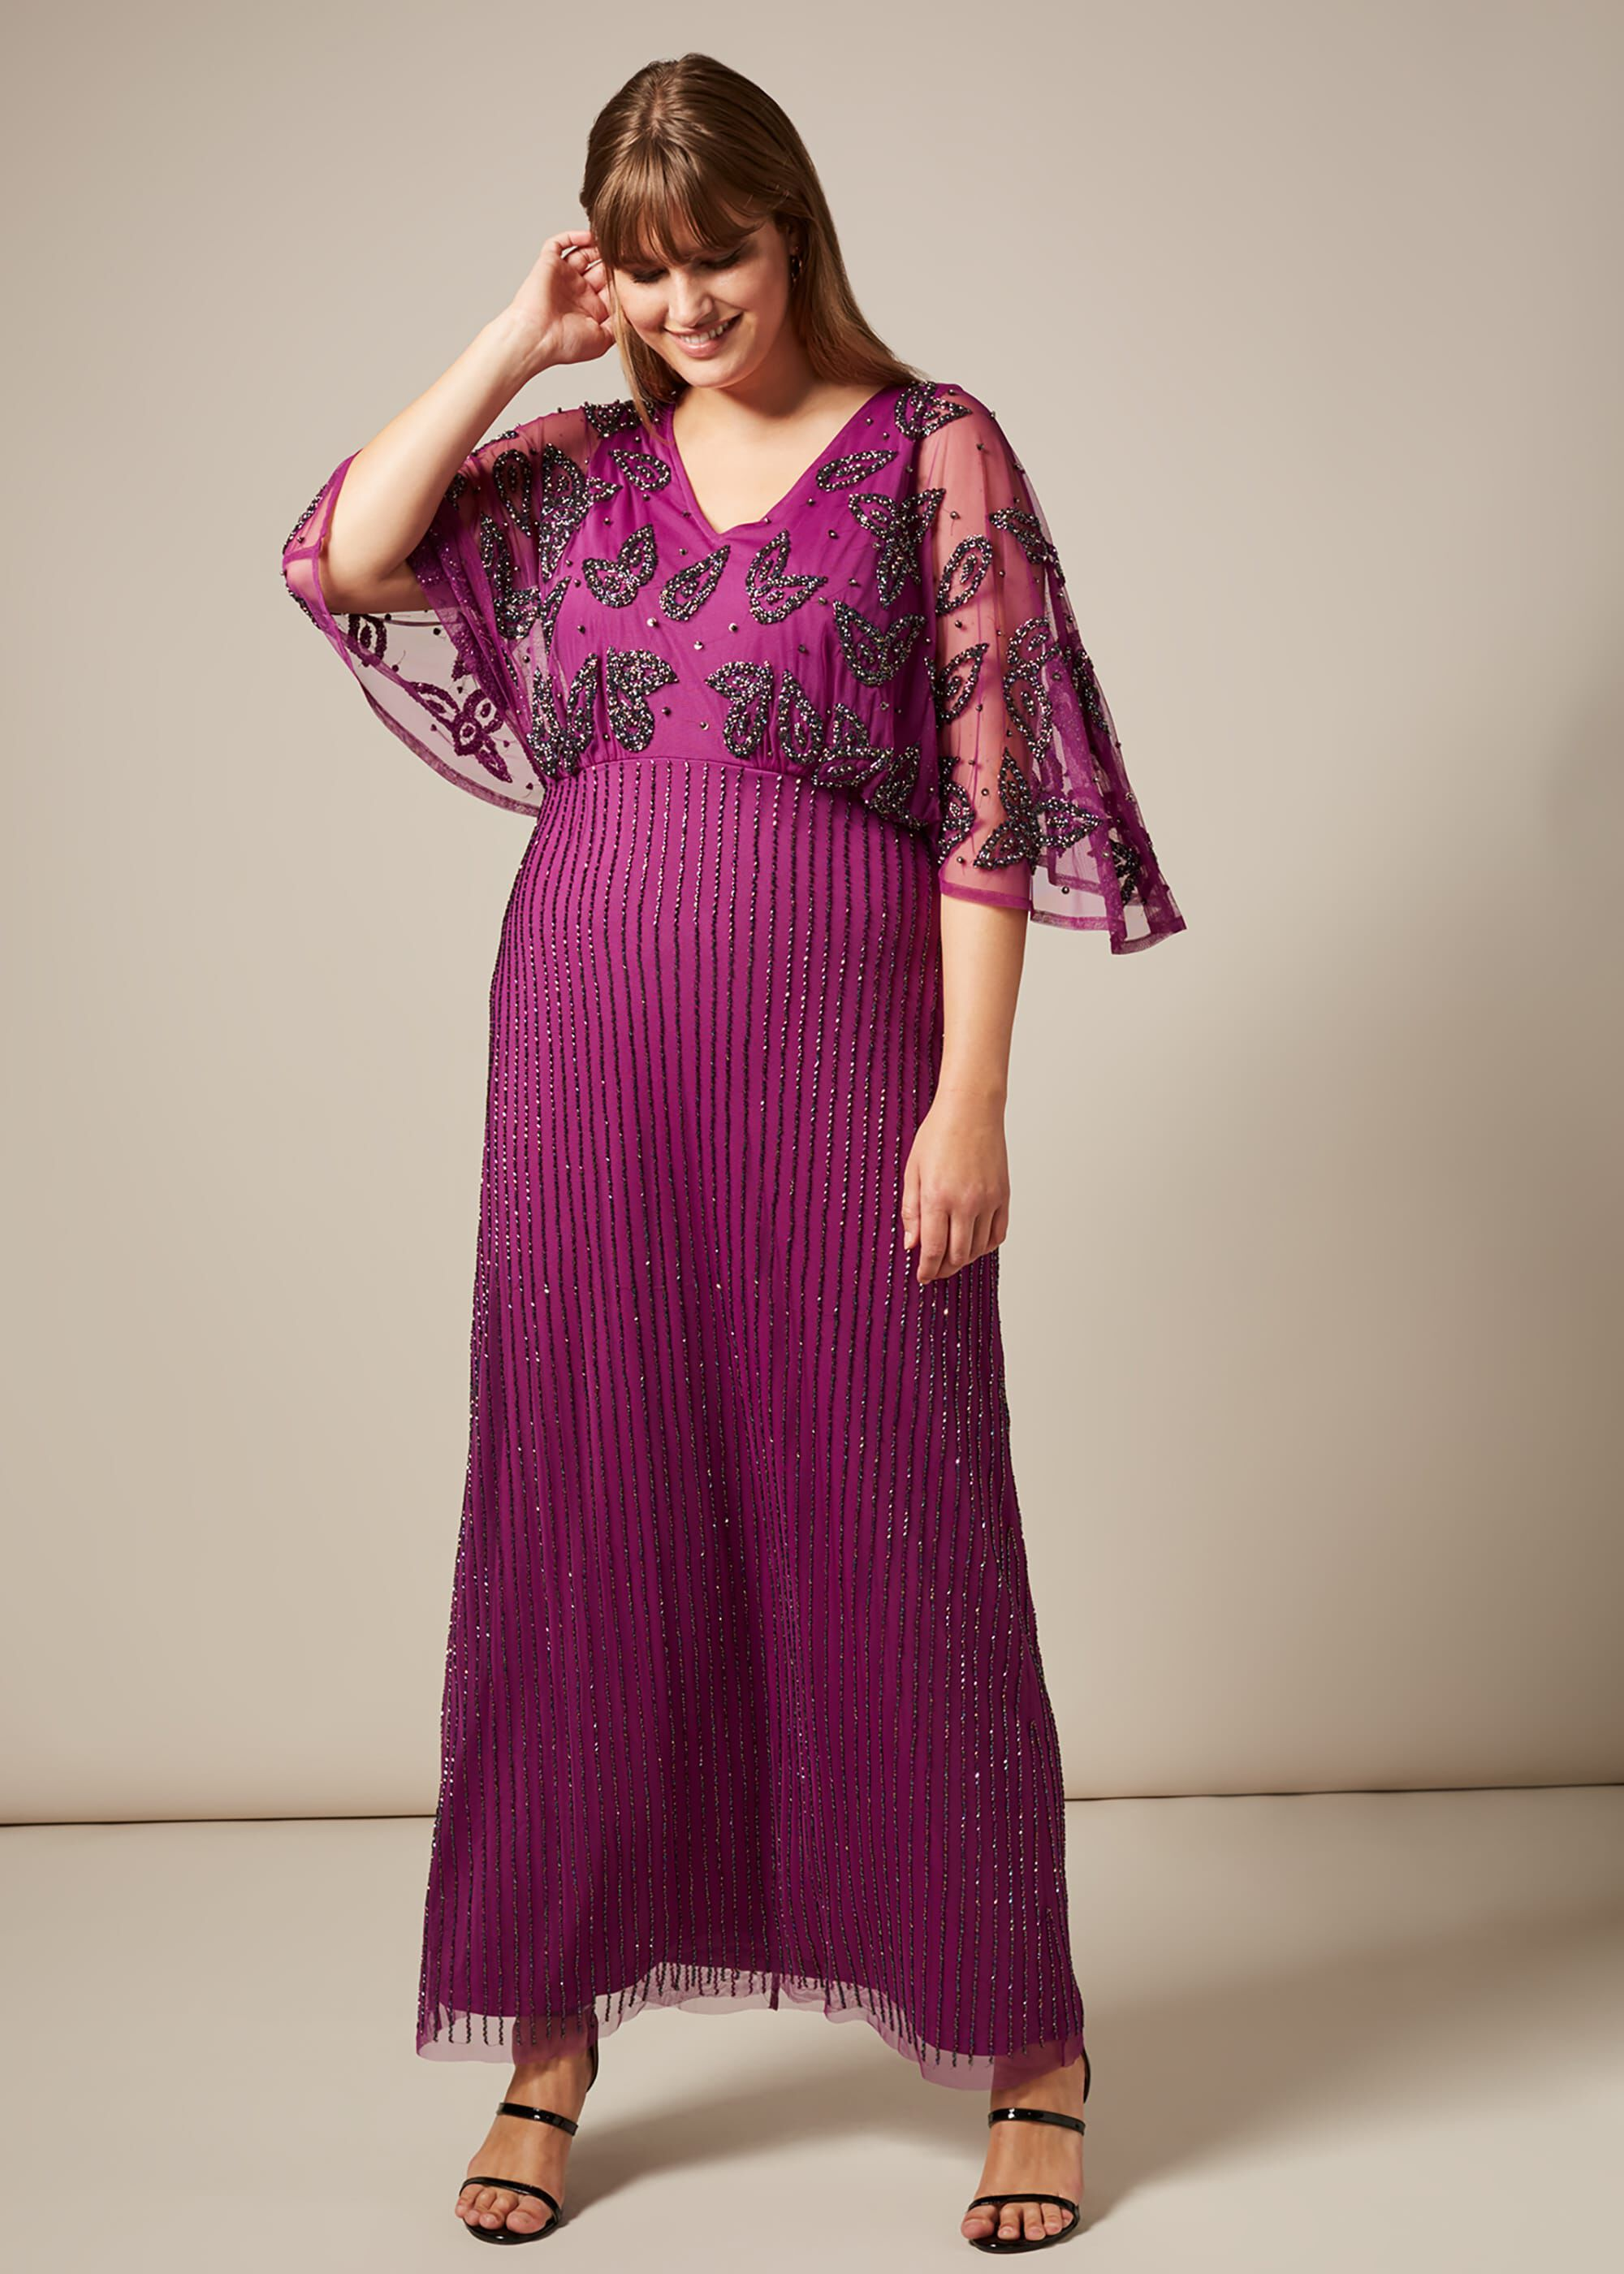 Studio 8 Selene Beaded Maxi Dress, Purple, Maxi, Occasion Dress